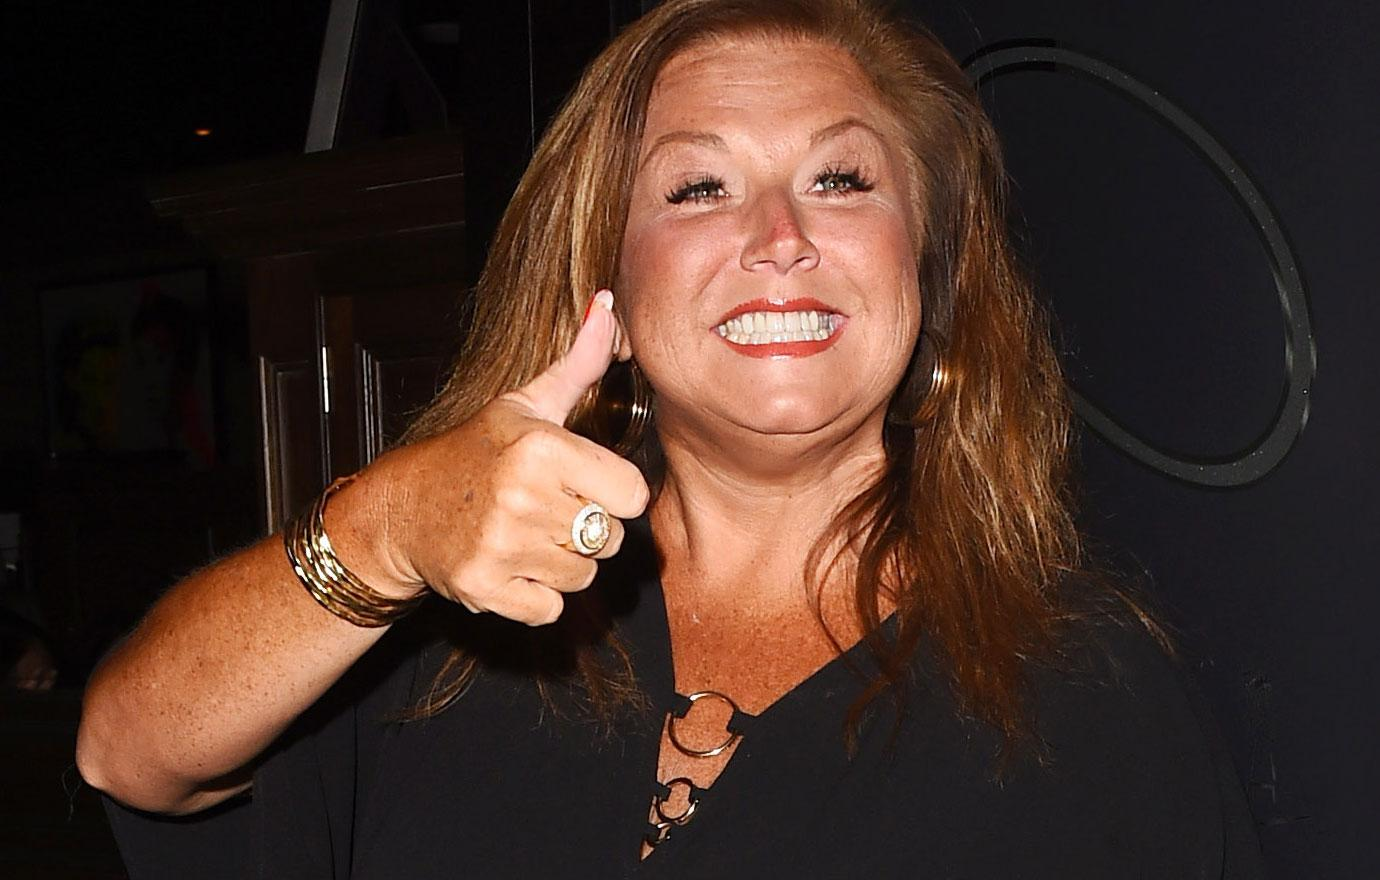 Cancer-Stricken Abby Lee Miller Teases Amazing News